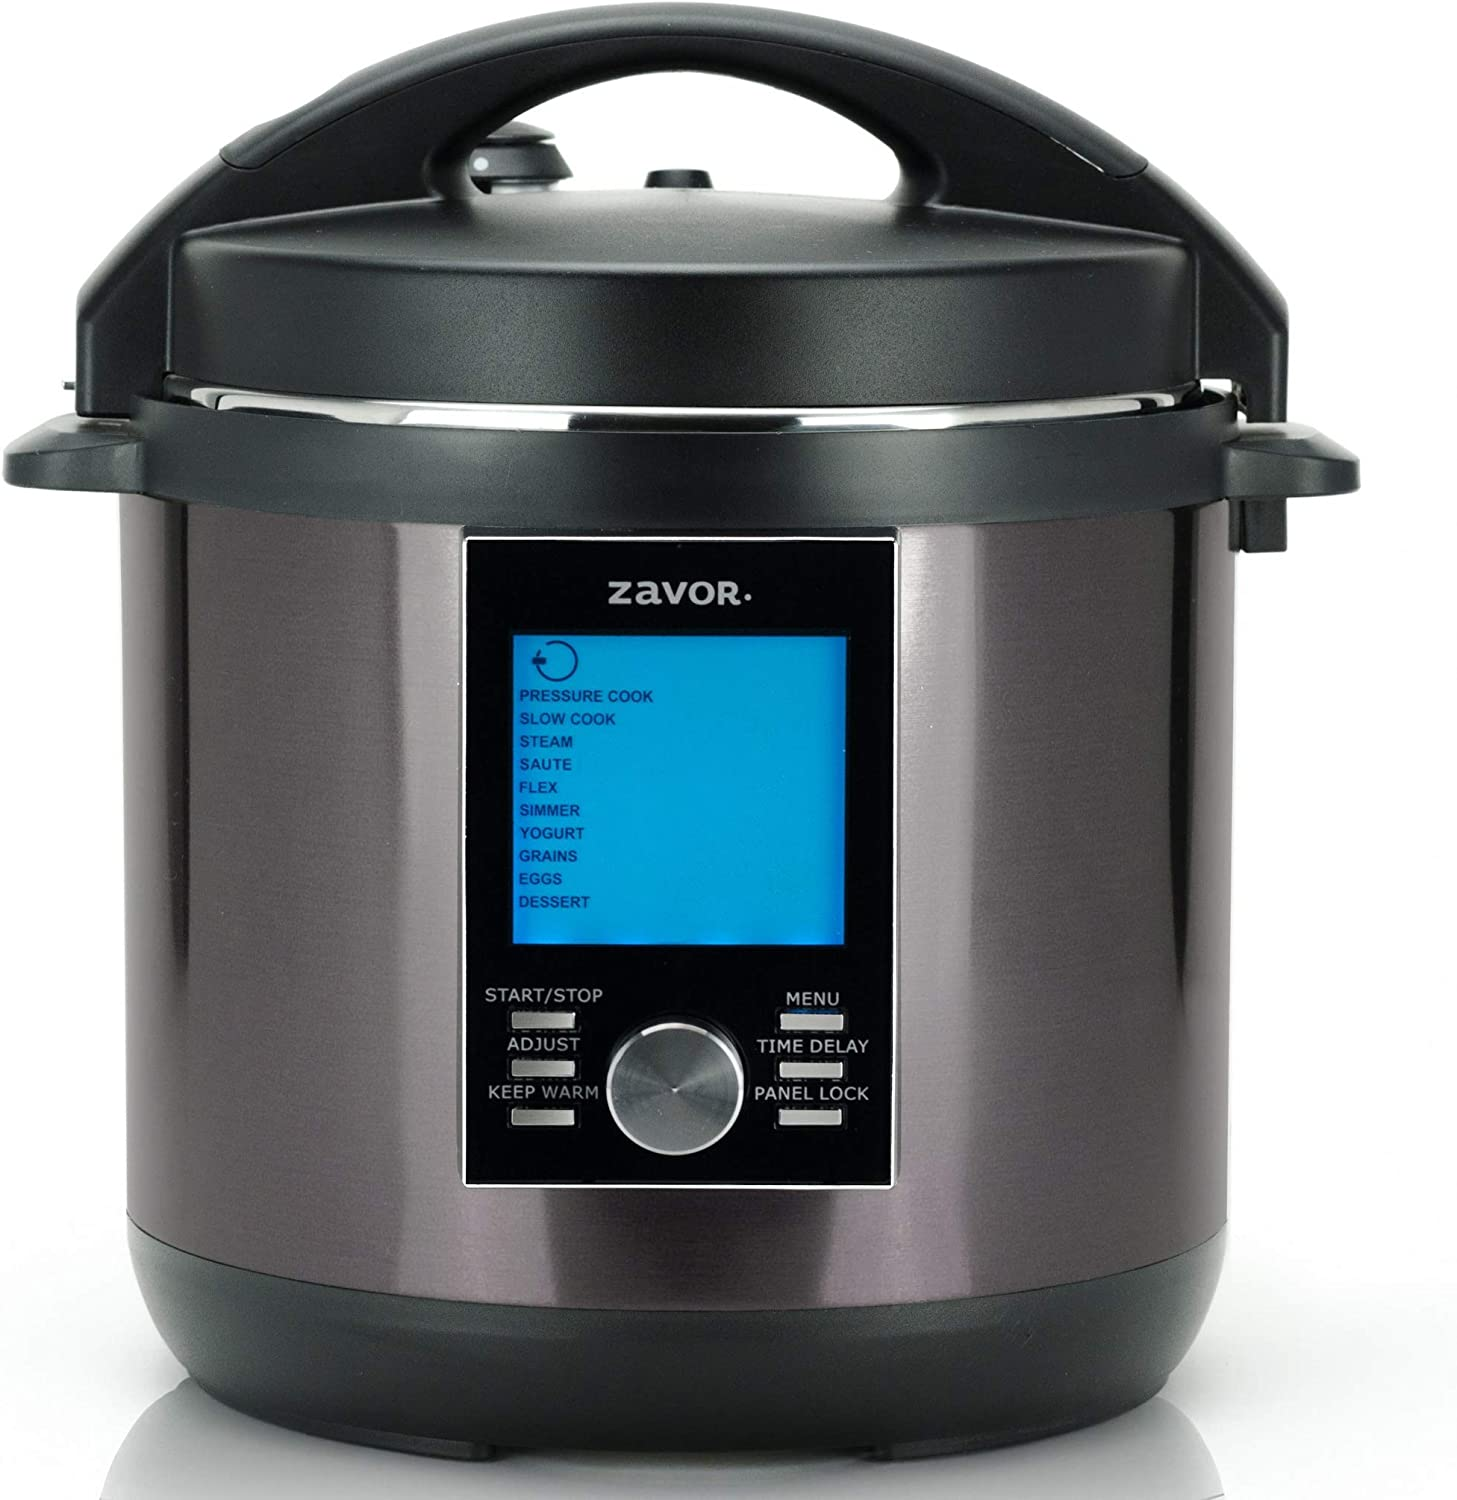 Zavor LUX LCD 6 Quart Programmable Electric Multi-Cooker: Pressure Cooker, Slow Cooker, Rice Cooker, Yogurt Maker, Steamer and more - Black (ZSELL22)